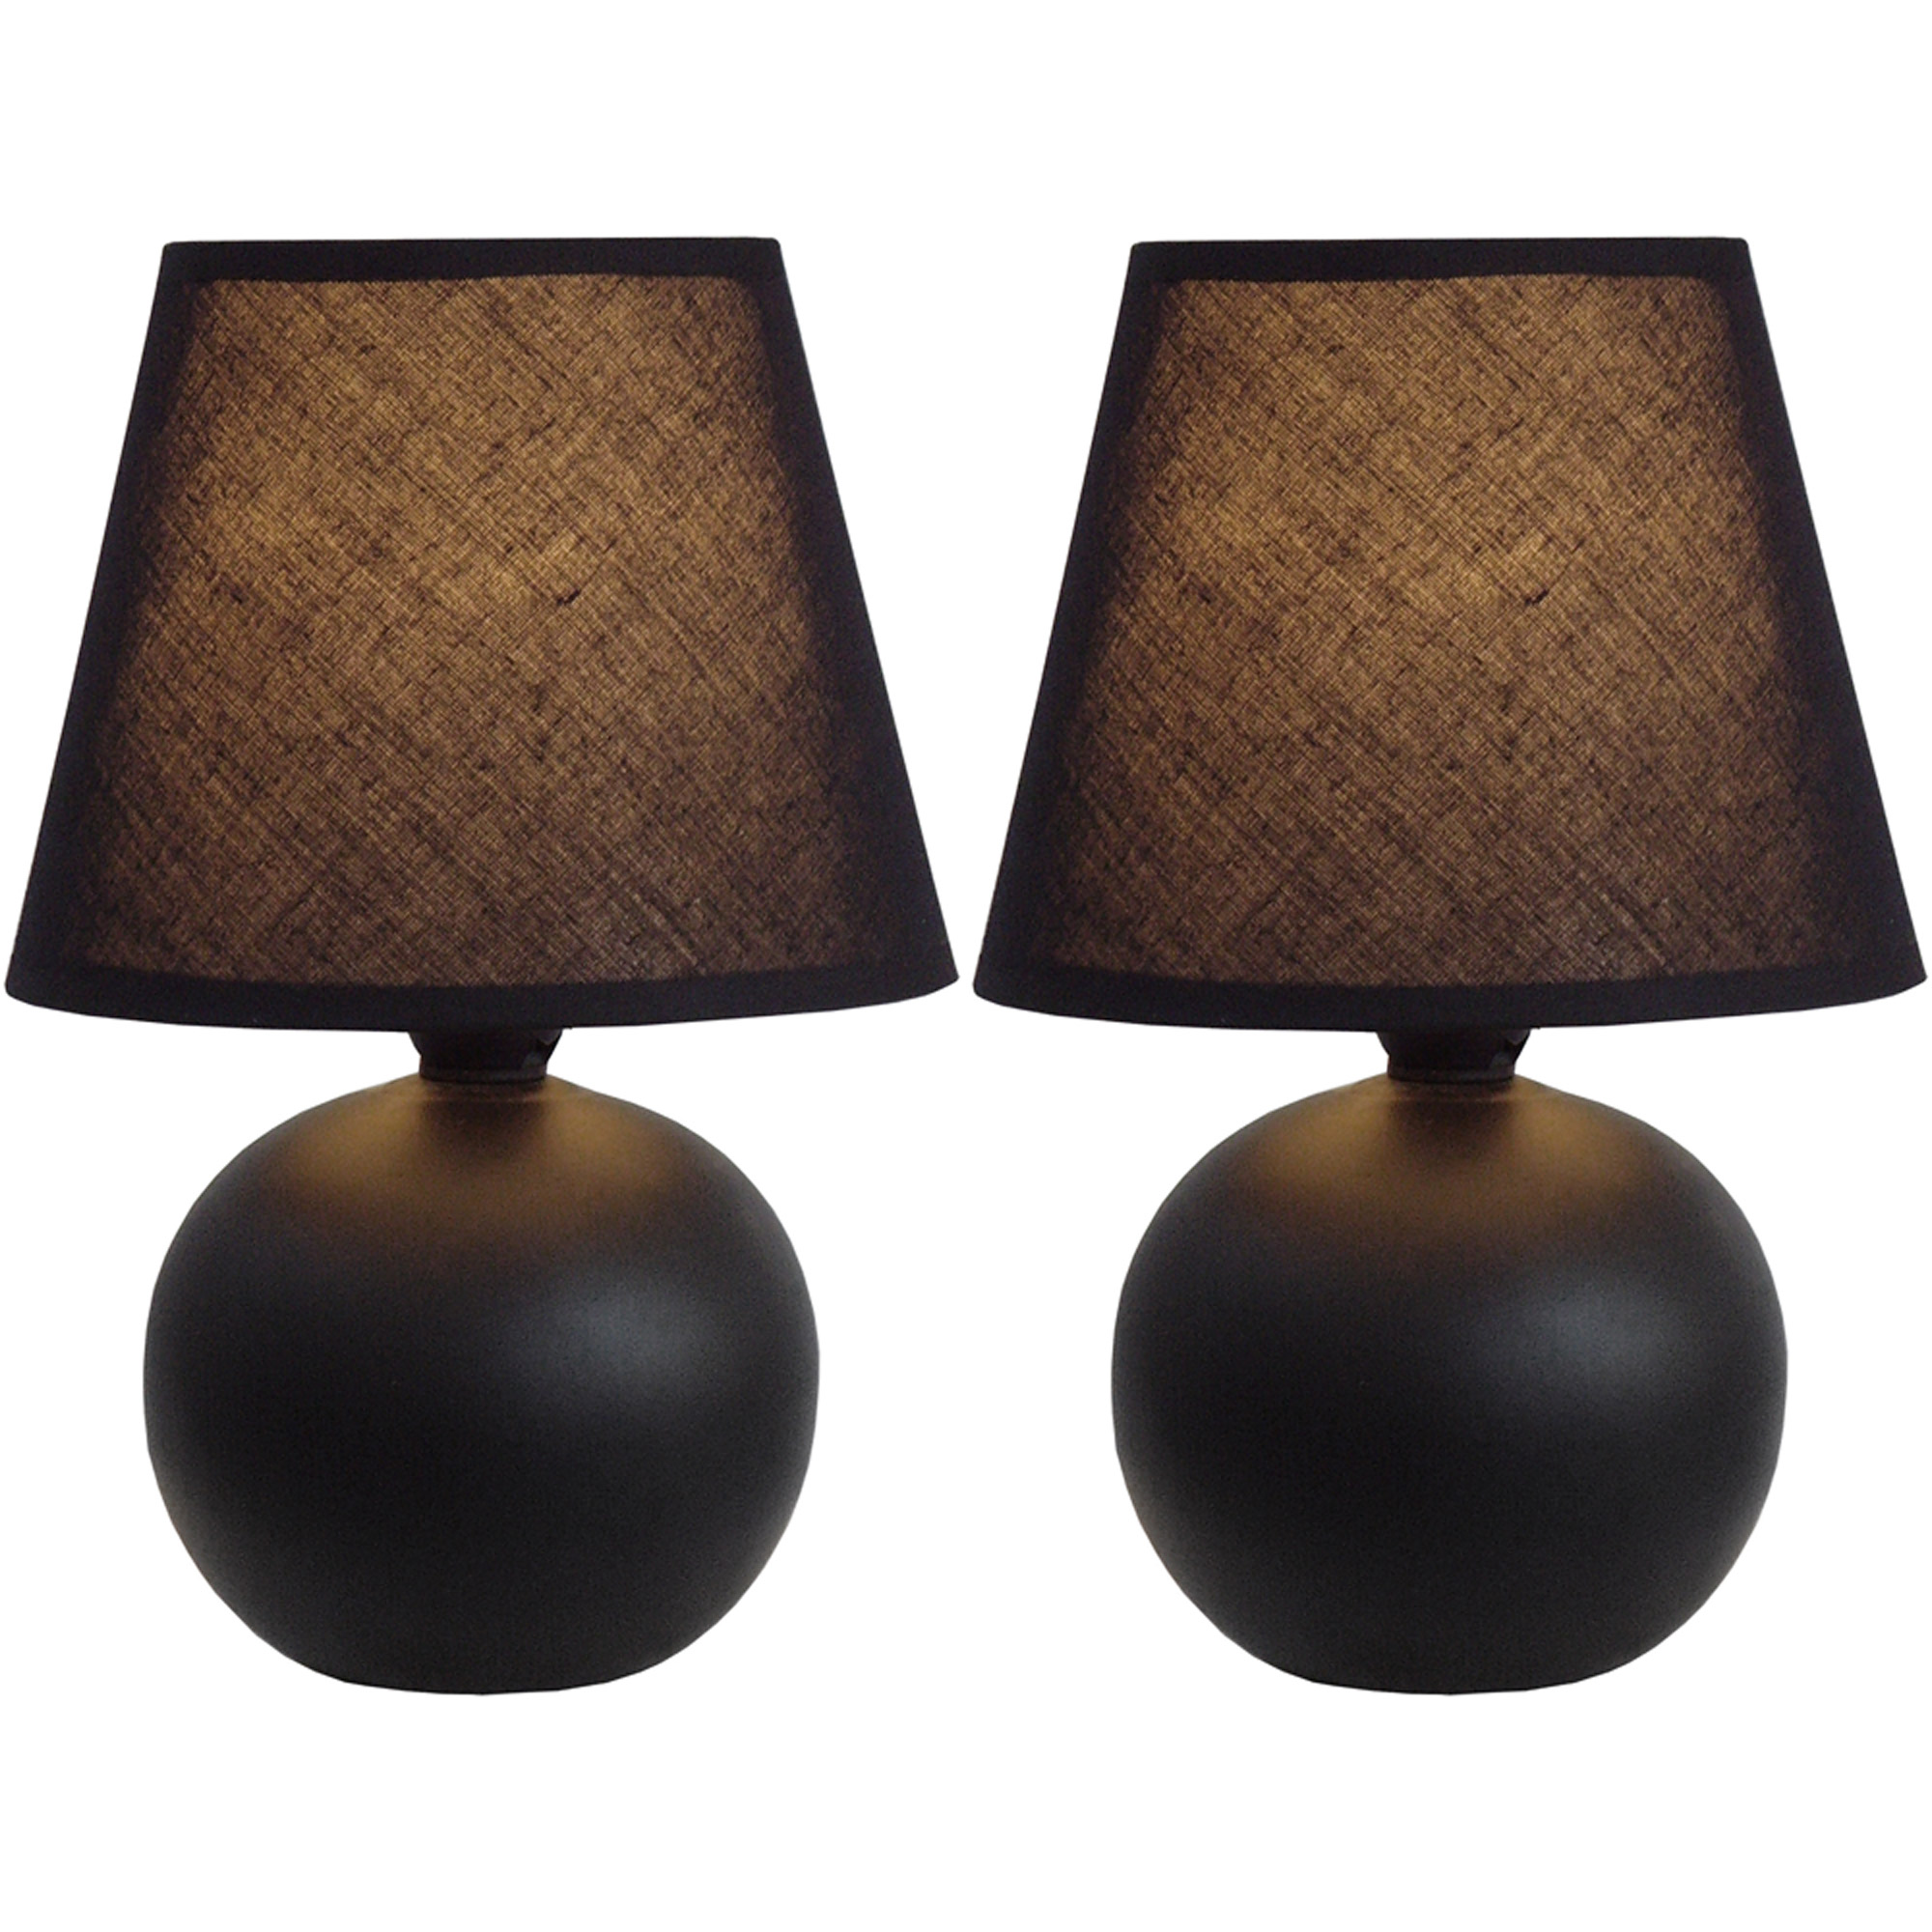 Simple Designs Mini Ceramic Globe Table Lamp Pack Set Walmartcom - Bedroom lamps at walmart